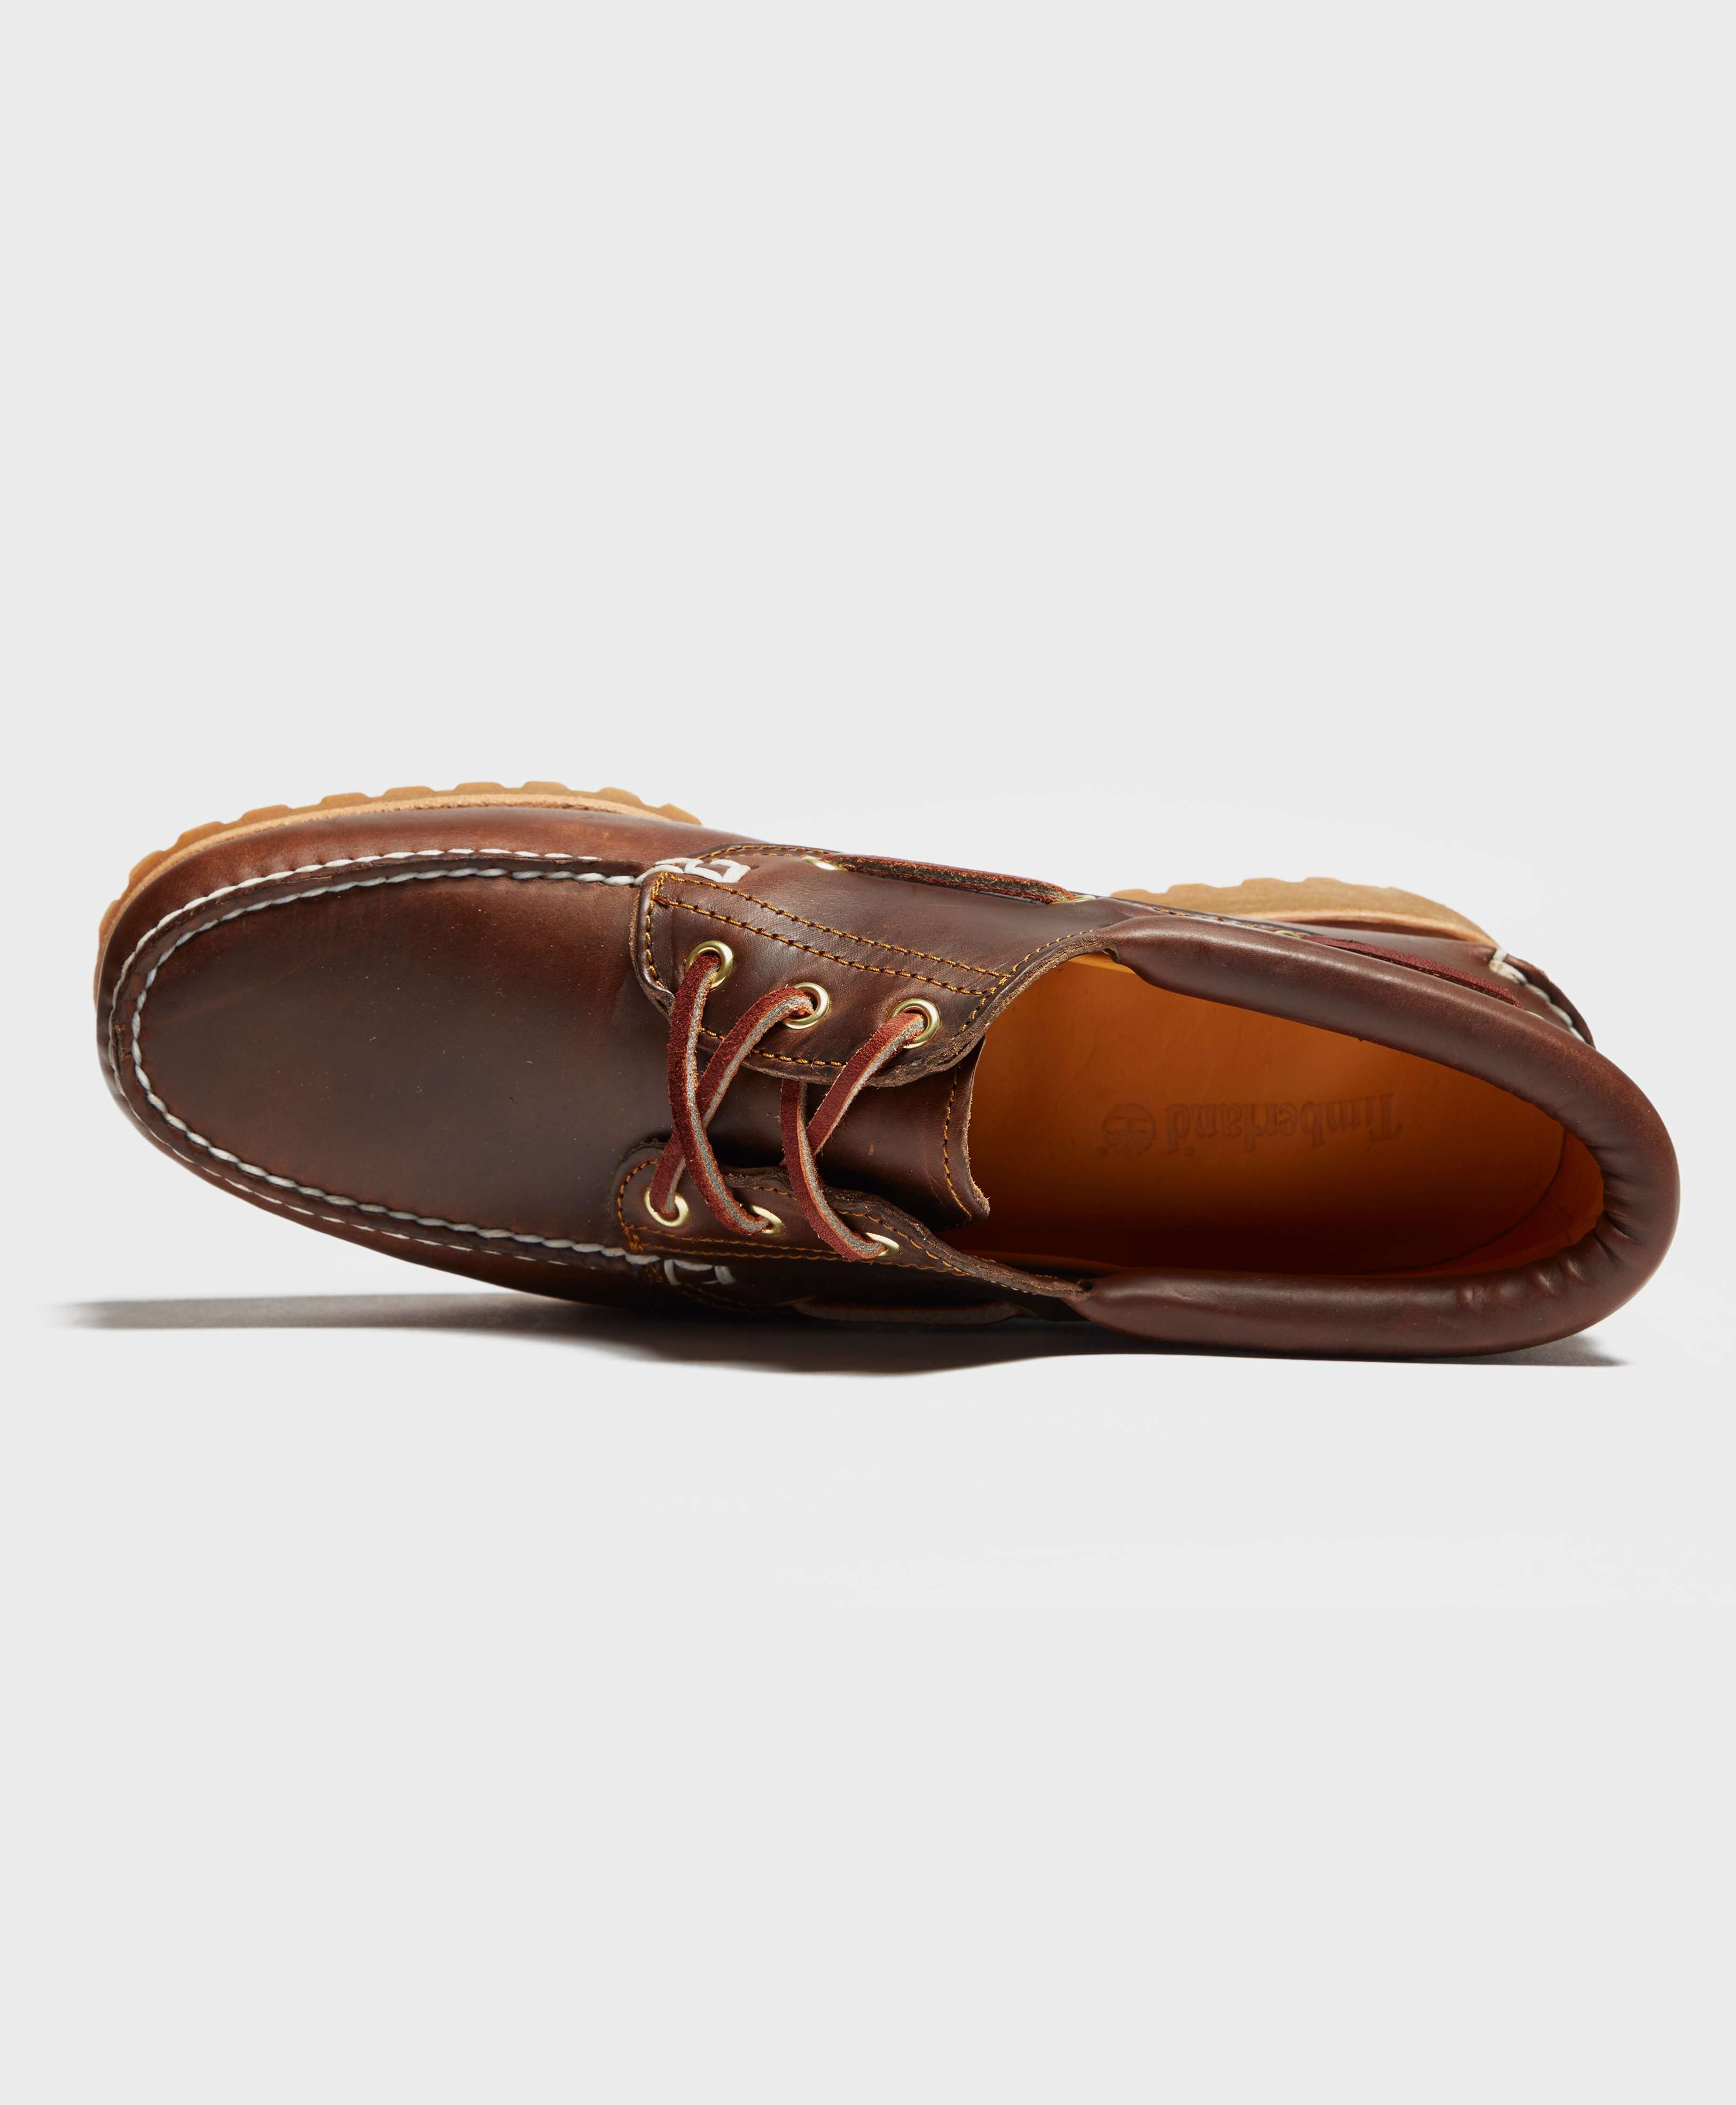 Timberland Authentic 3 Eye Boat Shoes - Online Exclusive